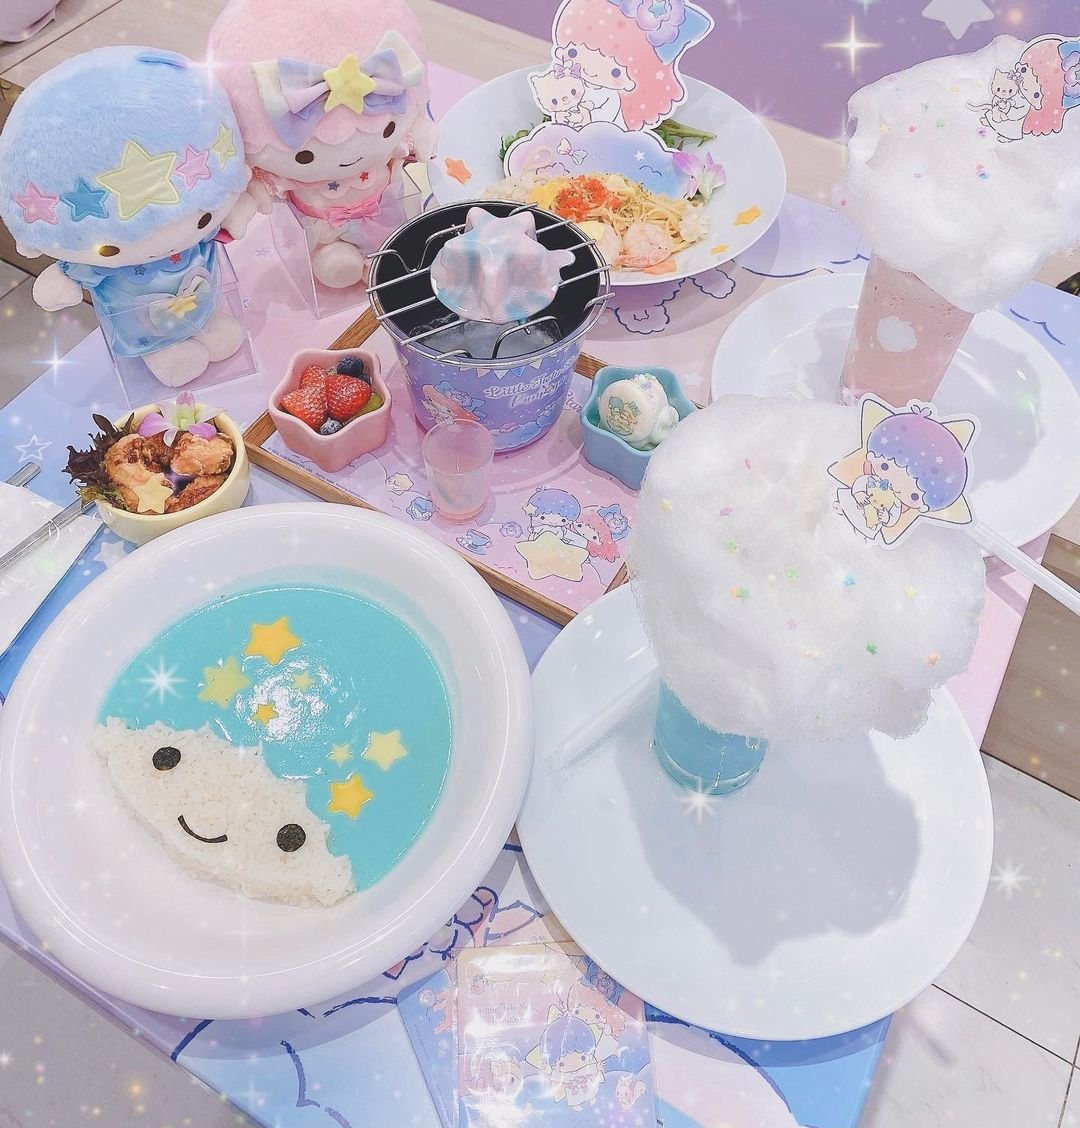 Orchid Starry Dreamz - New cafes and Restaurants in December 2020